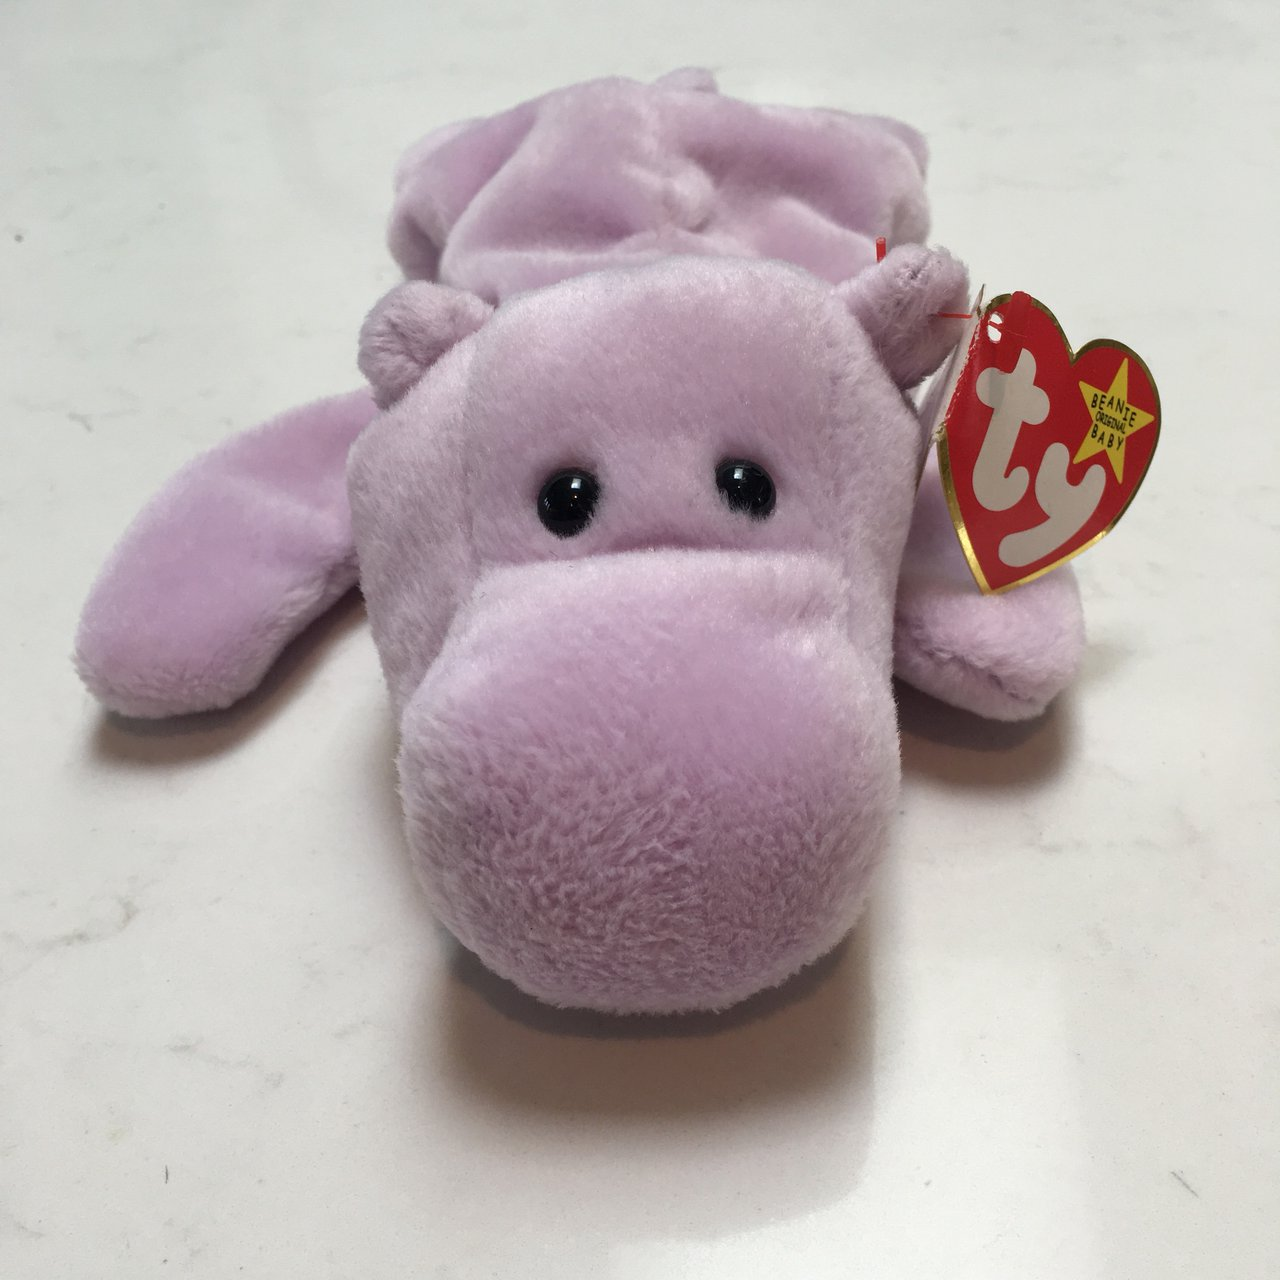 Vintage Happy the Hippo Beanie Baby by TY Throwback toy to a - Depop c5c00540a6e